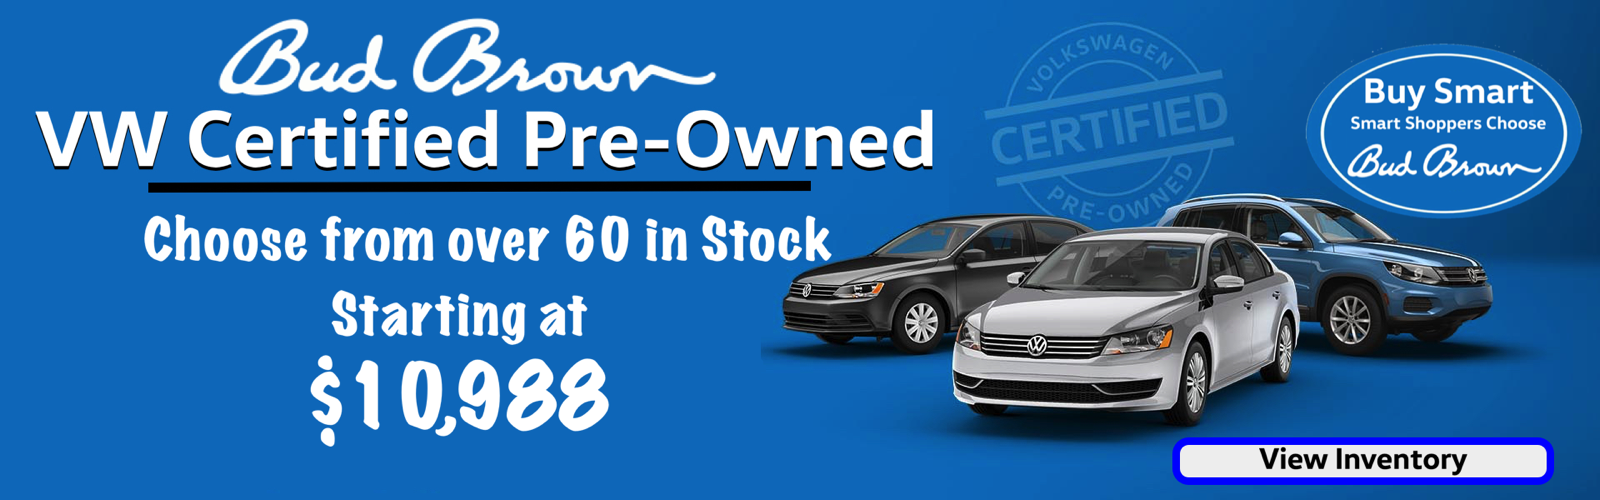 Bud Brown is KC's #1 Certified Pre-Owned VW Dealer